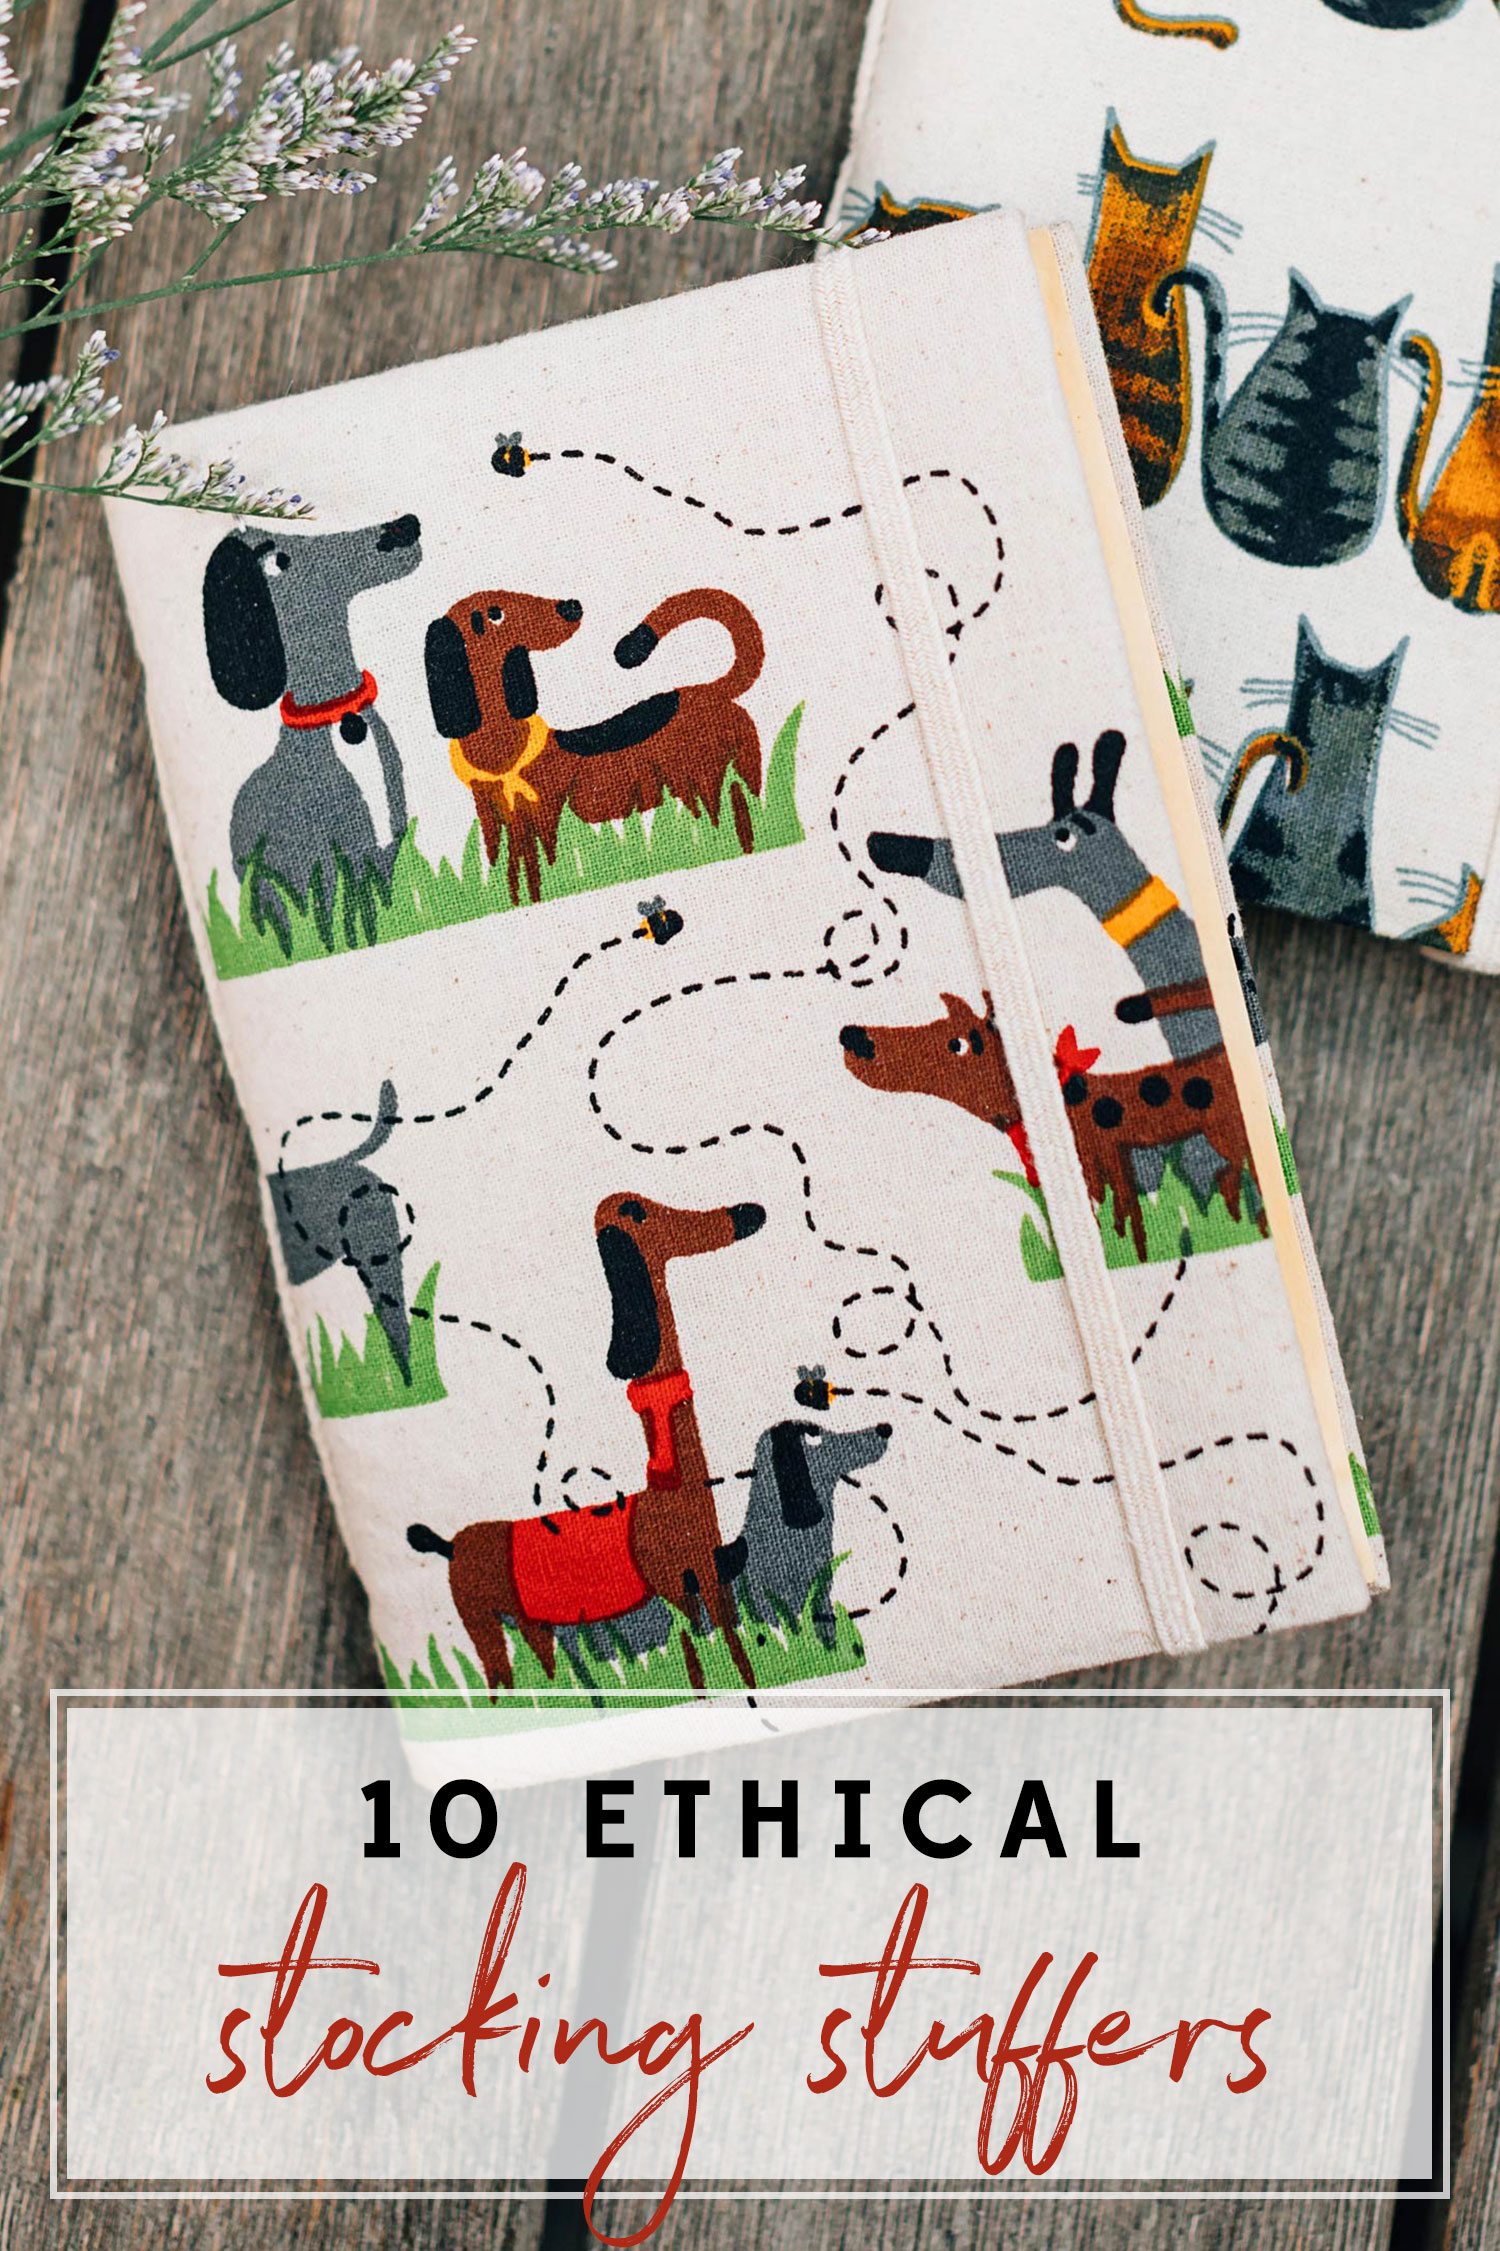 10 Ethical Stocking Stuffers   Wandering Thoughts Journal